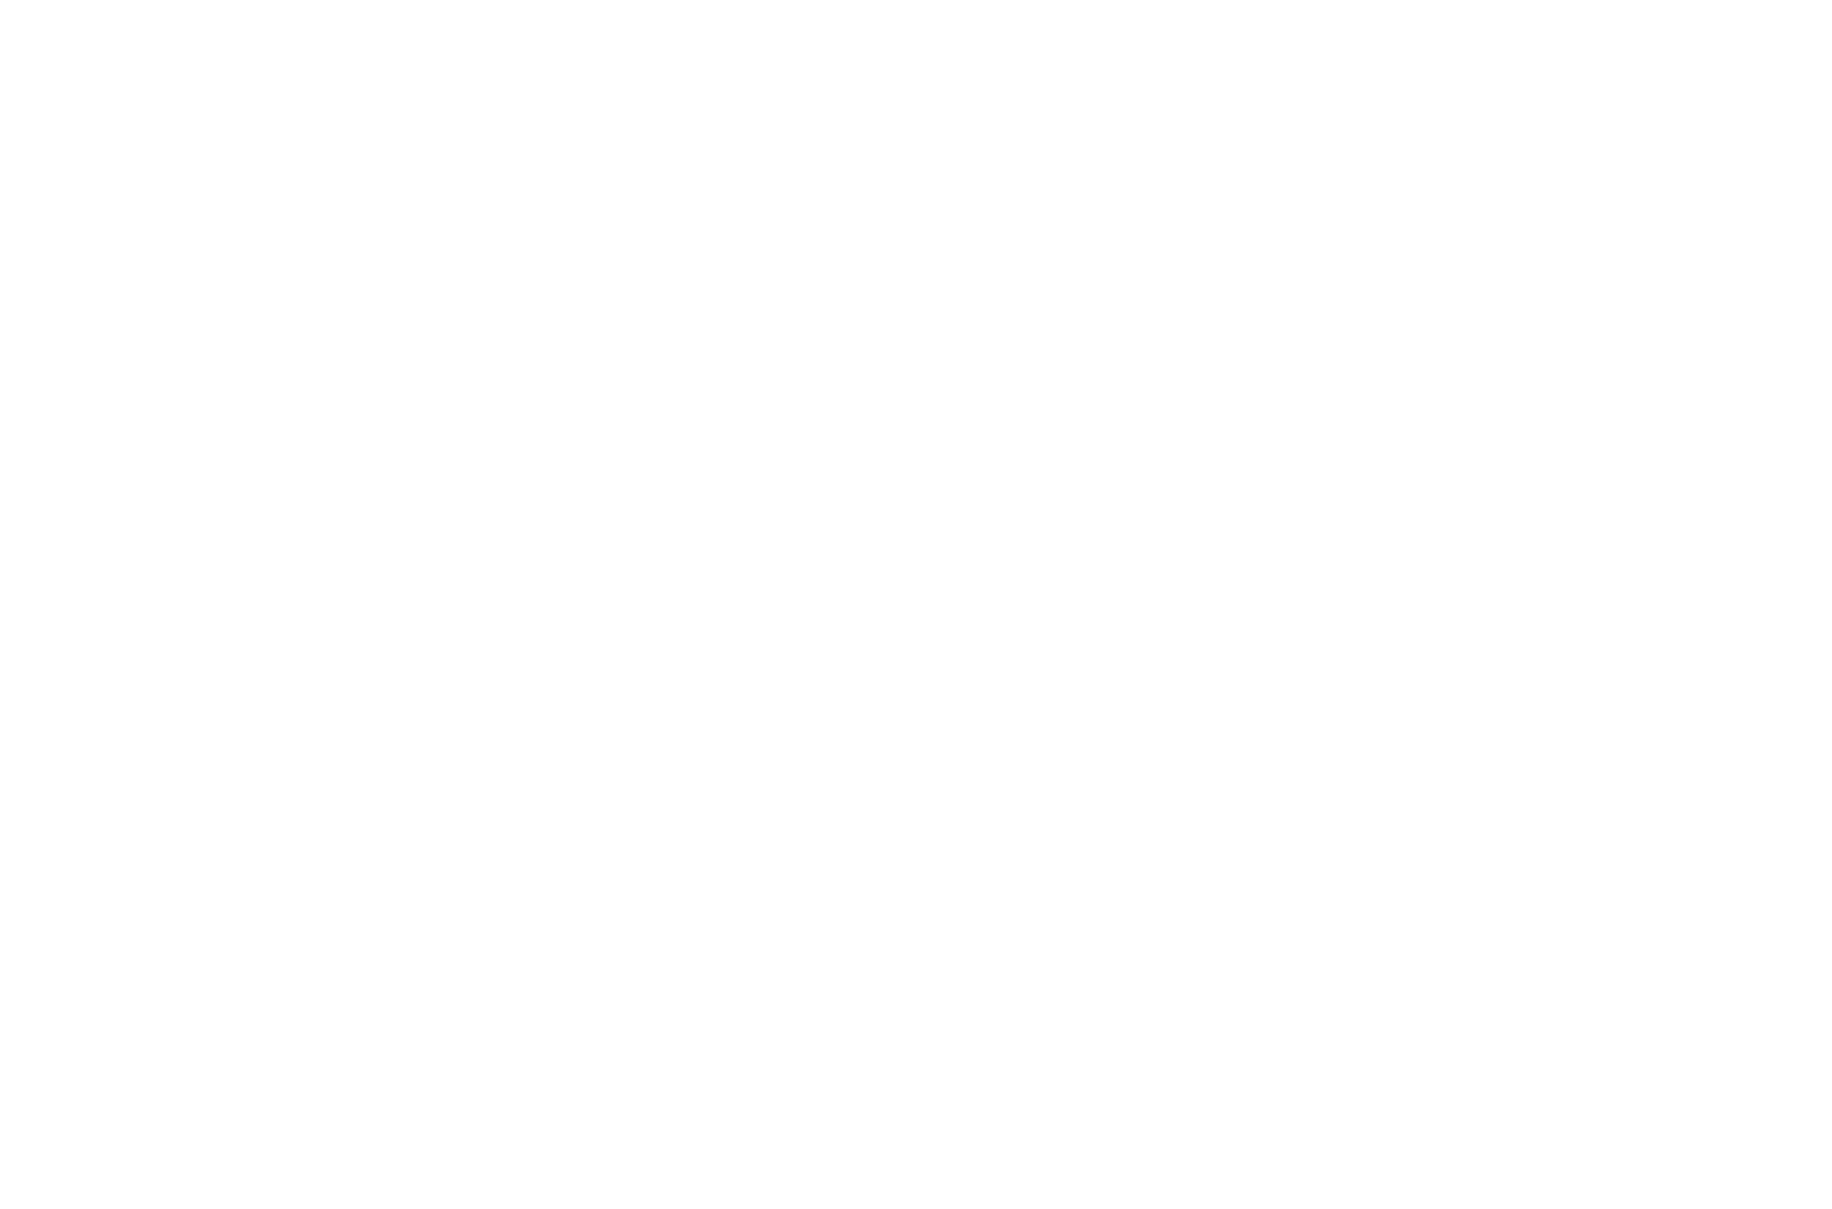 Final Boss Fight Logo